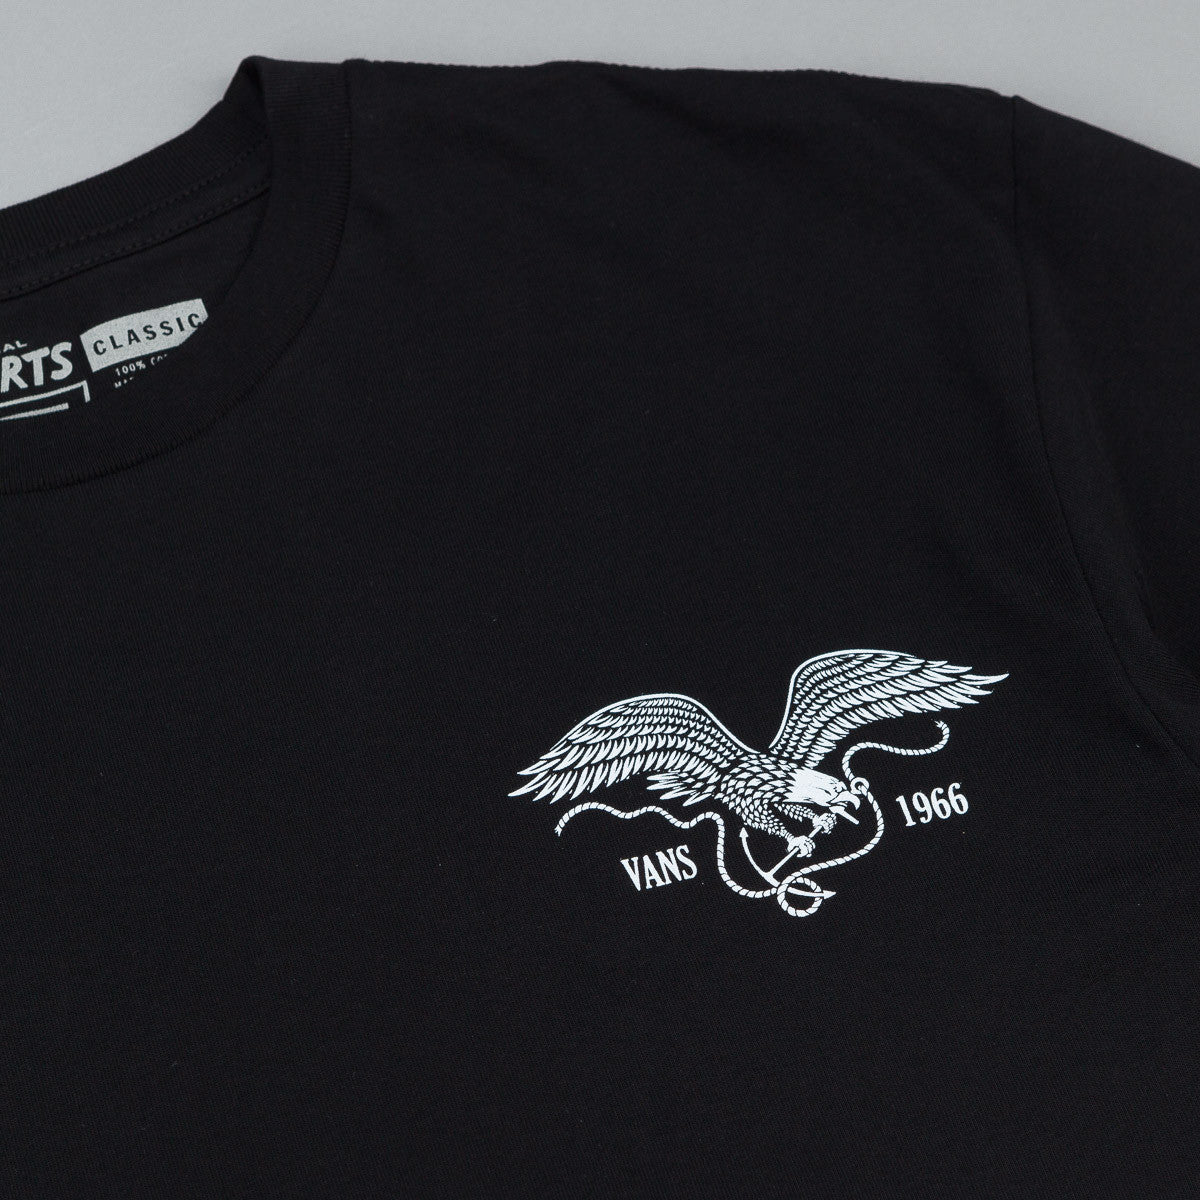 Vans Anchor Clanker T-Shirt - Black